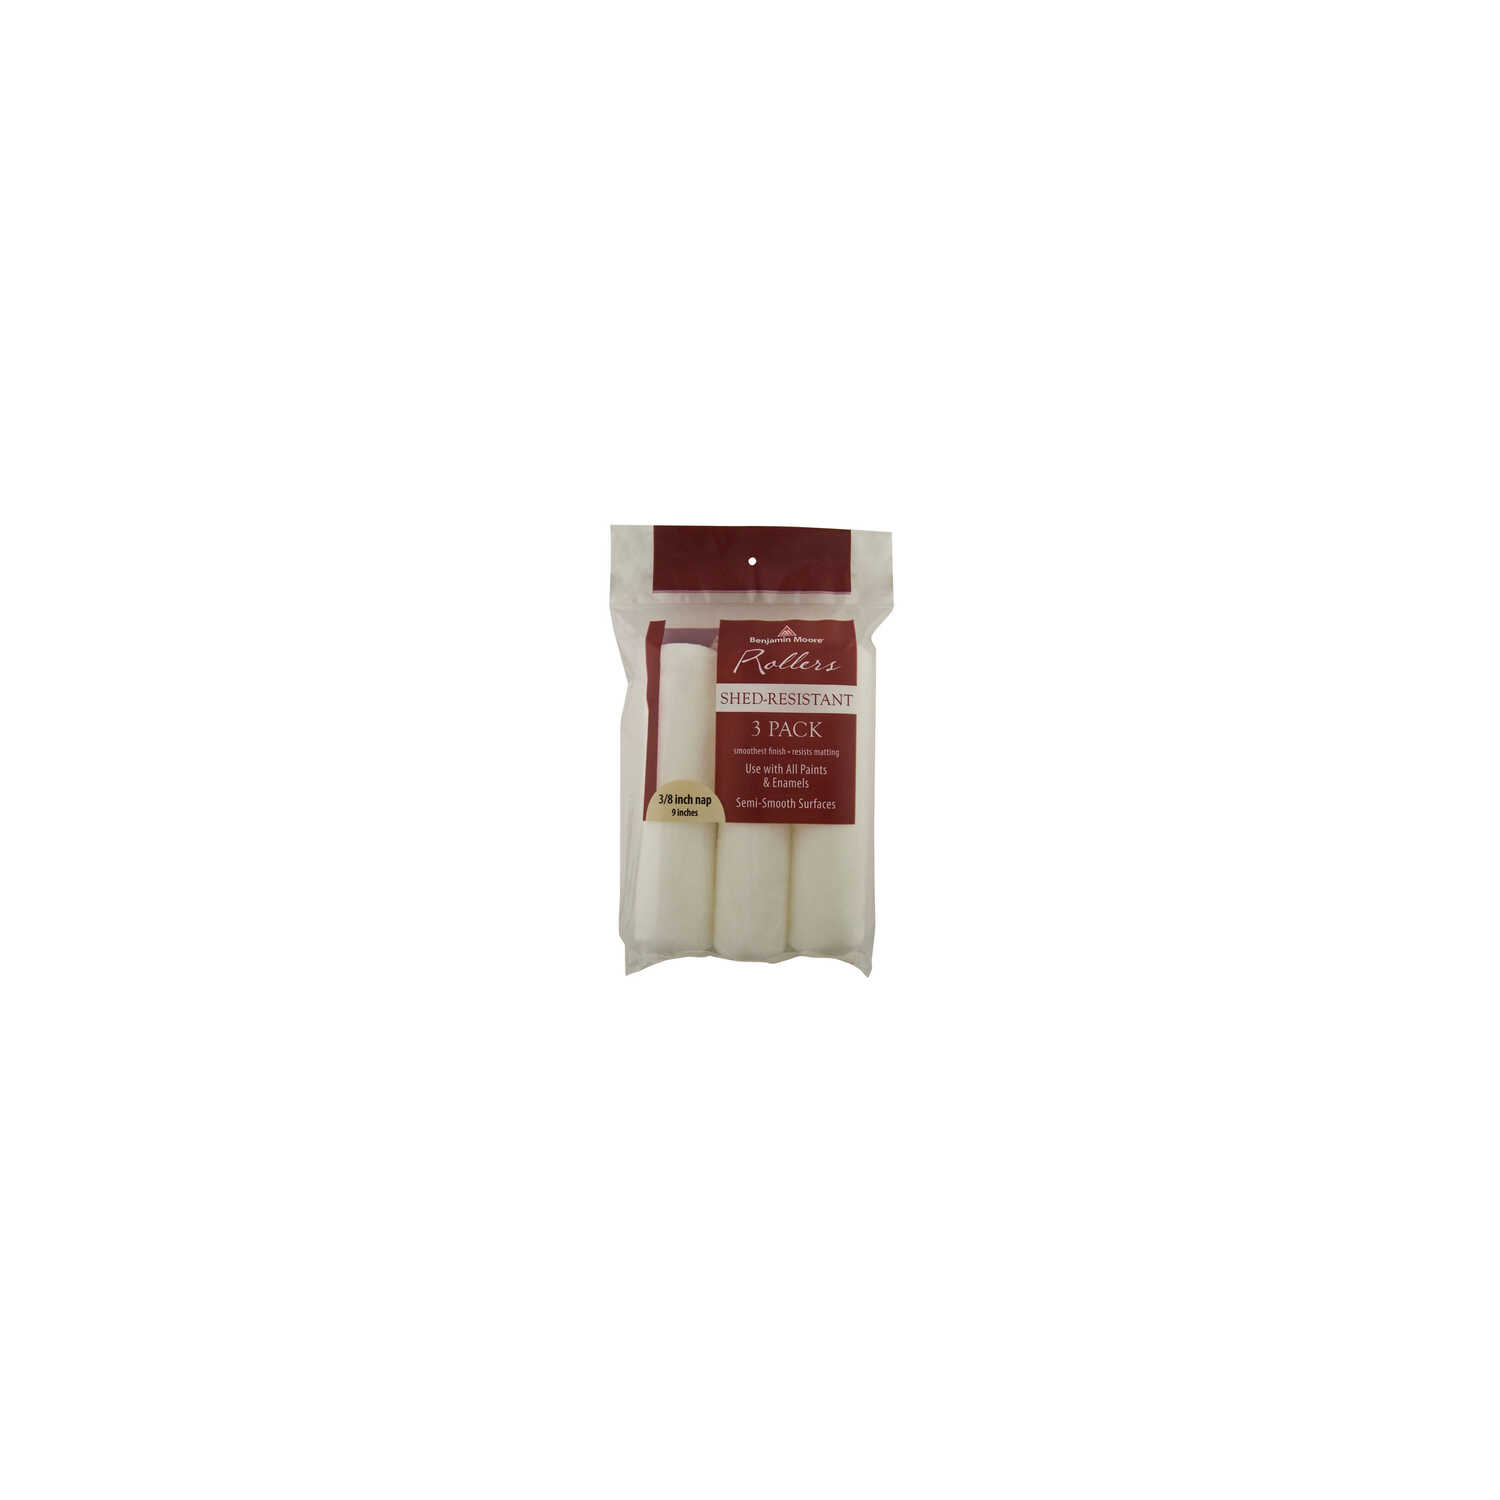 Benjamin Moore  Fabric  3/8 in.  x 9 in. W Paint Roller Cover  For Semi-Smooth Surfaces 3 pk